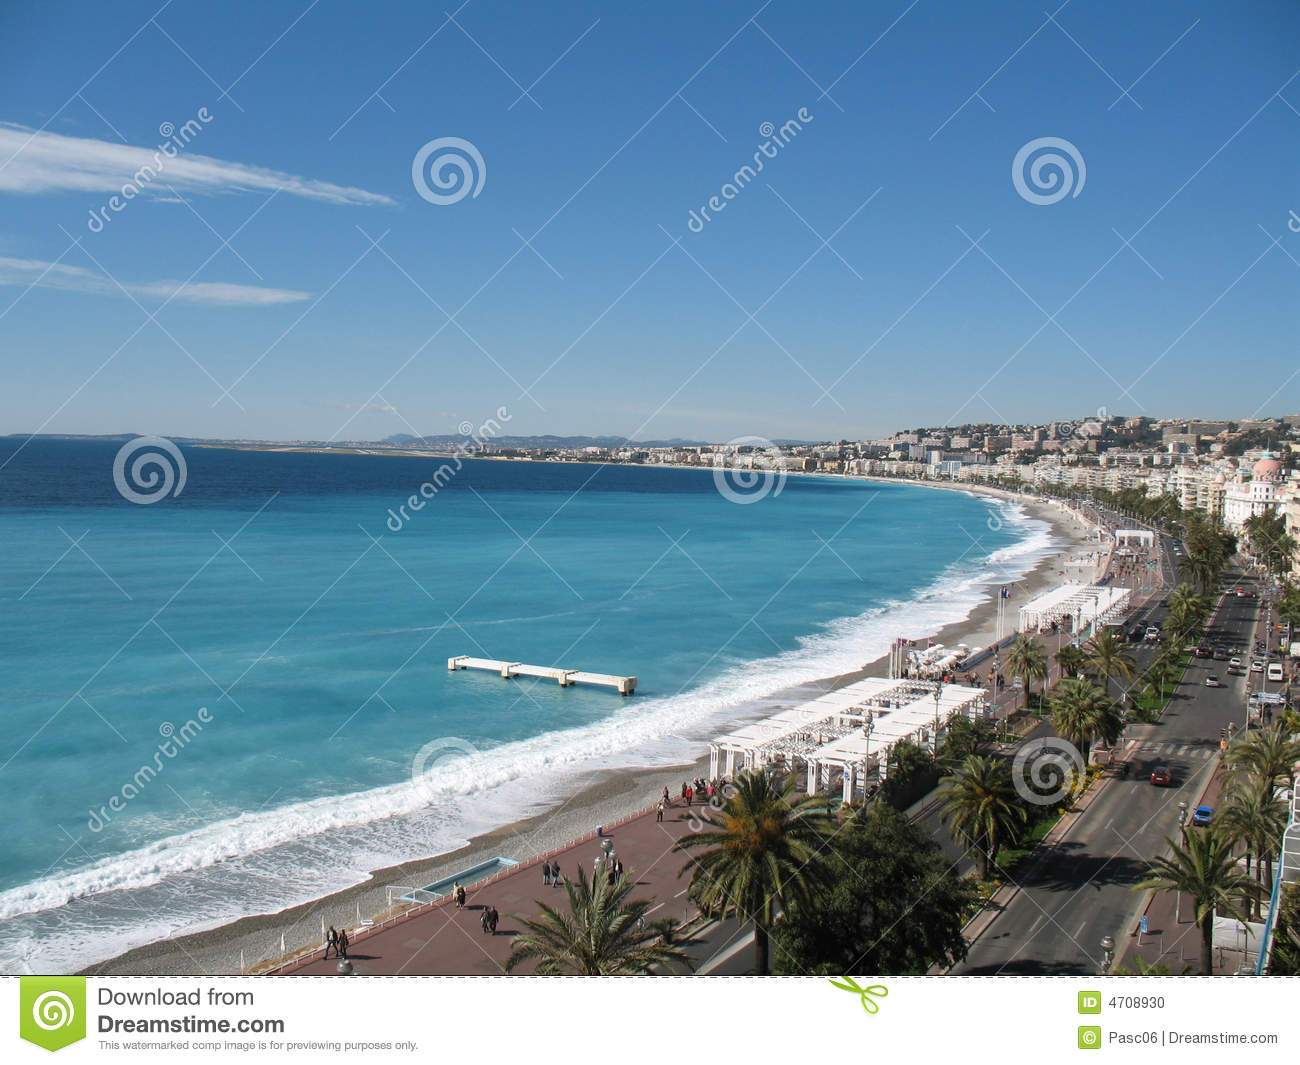 French Riviera - Famous places